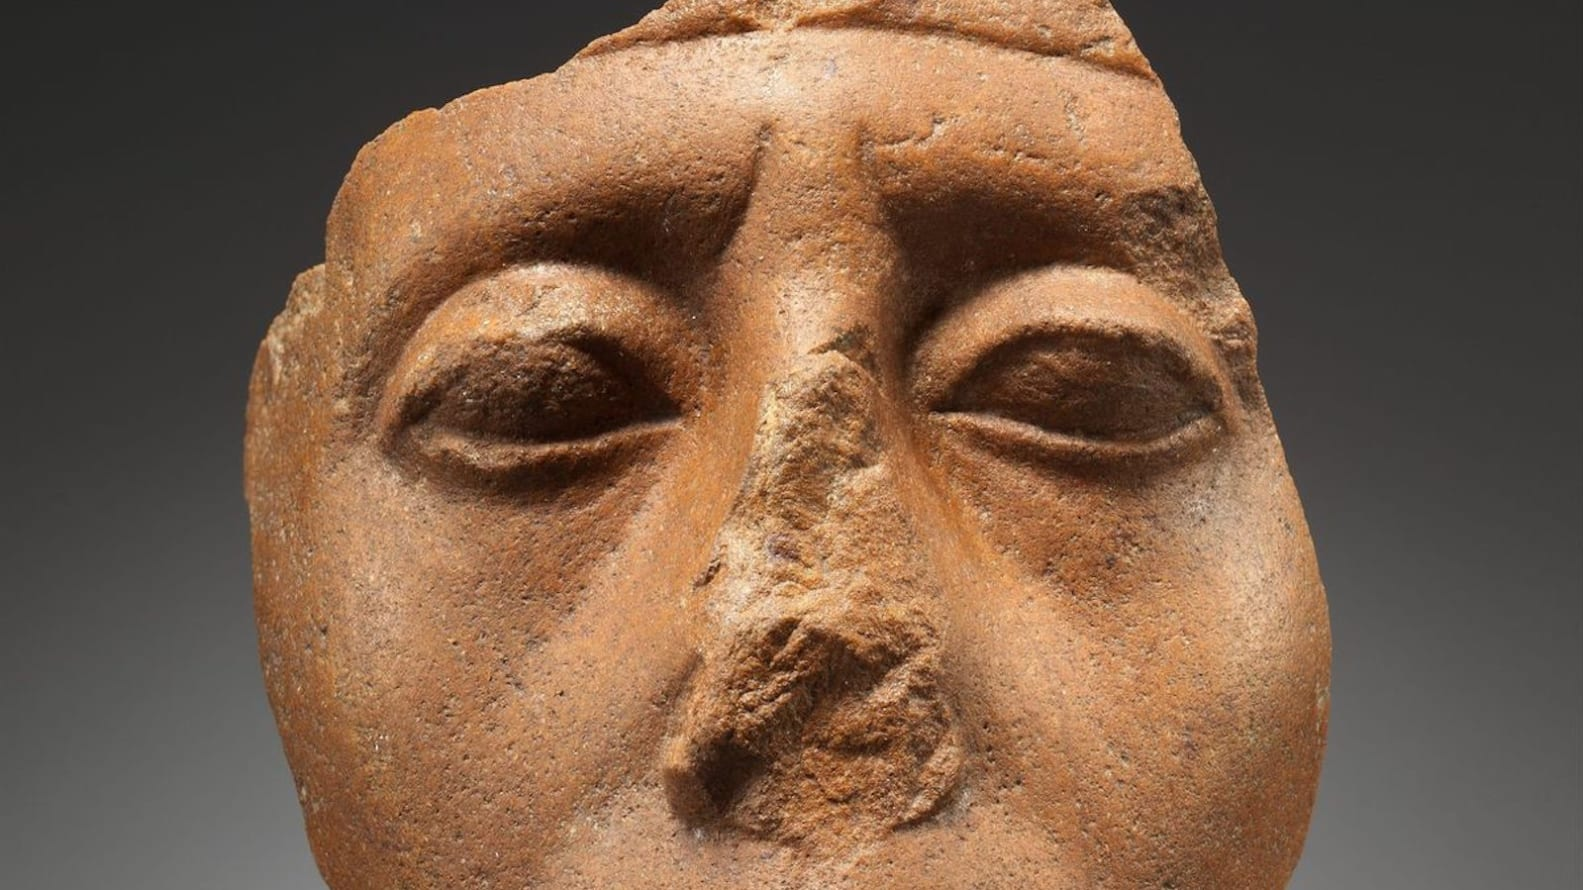 Why do so many Egyptian statues have broken noses?